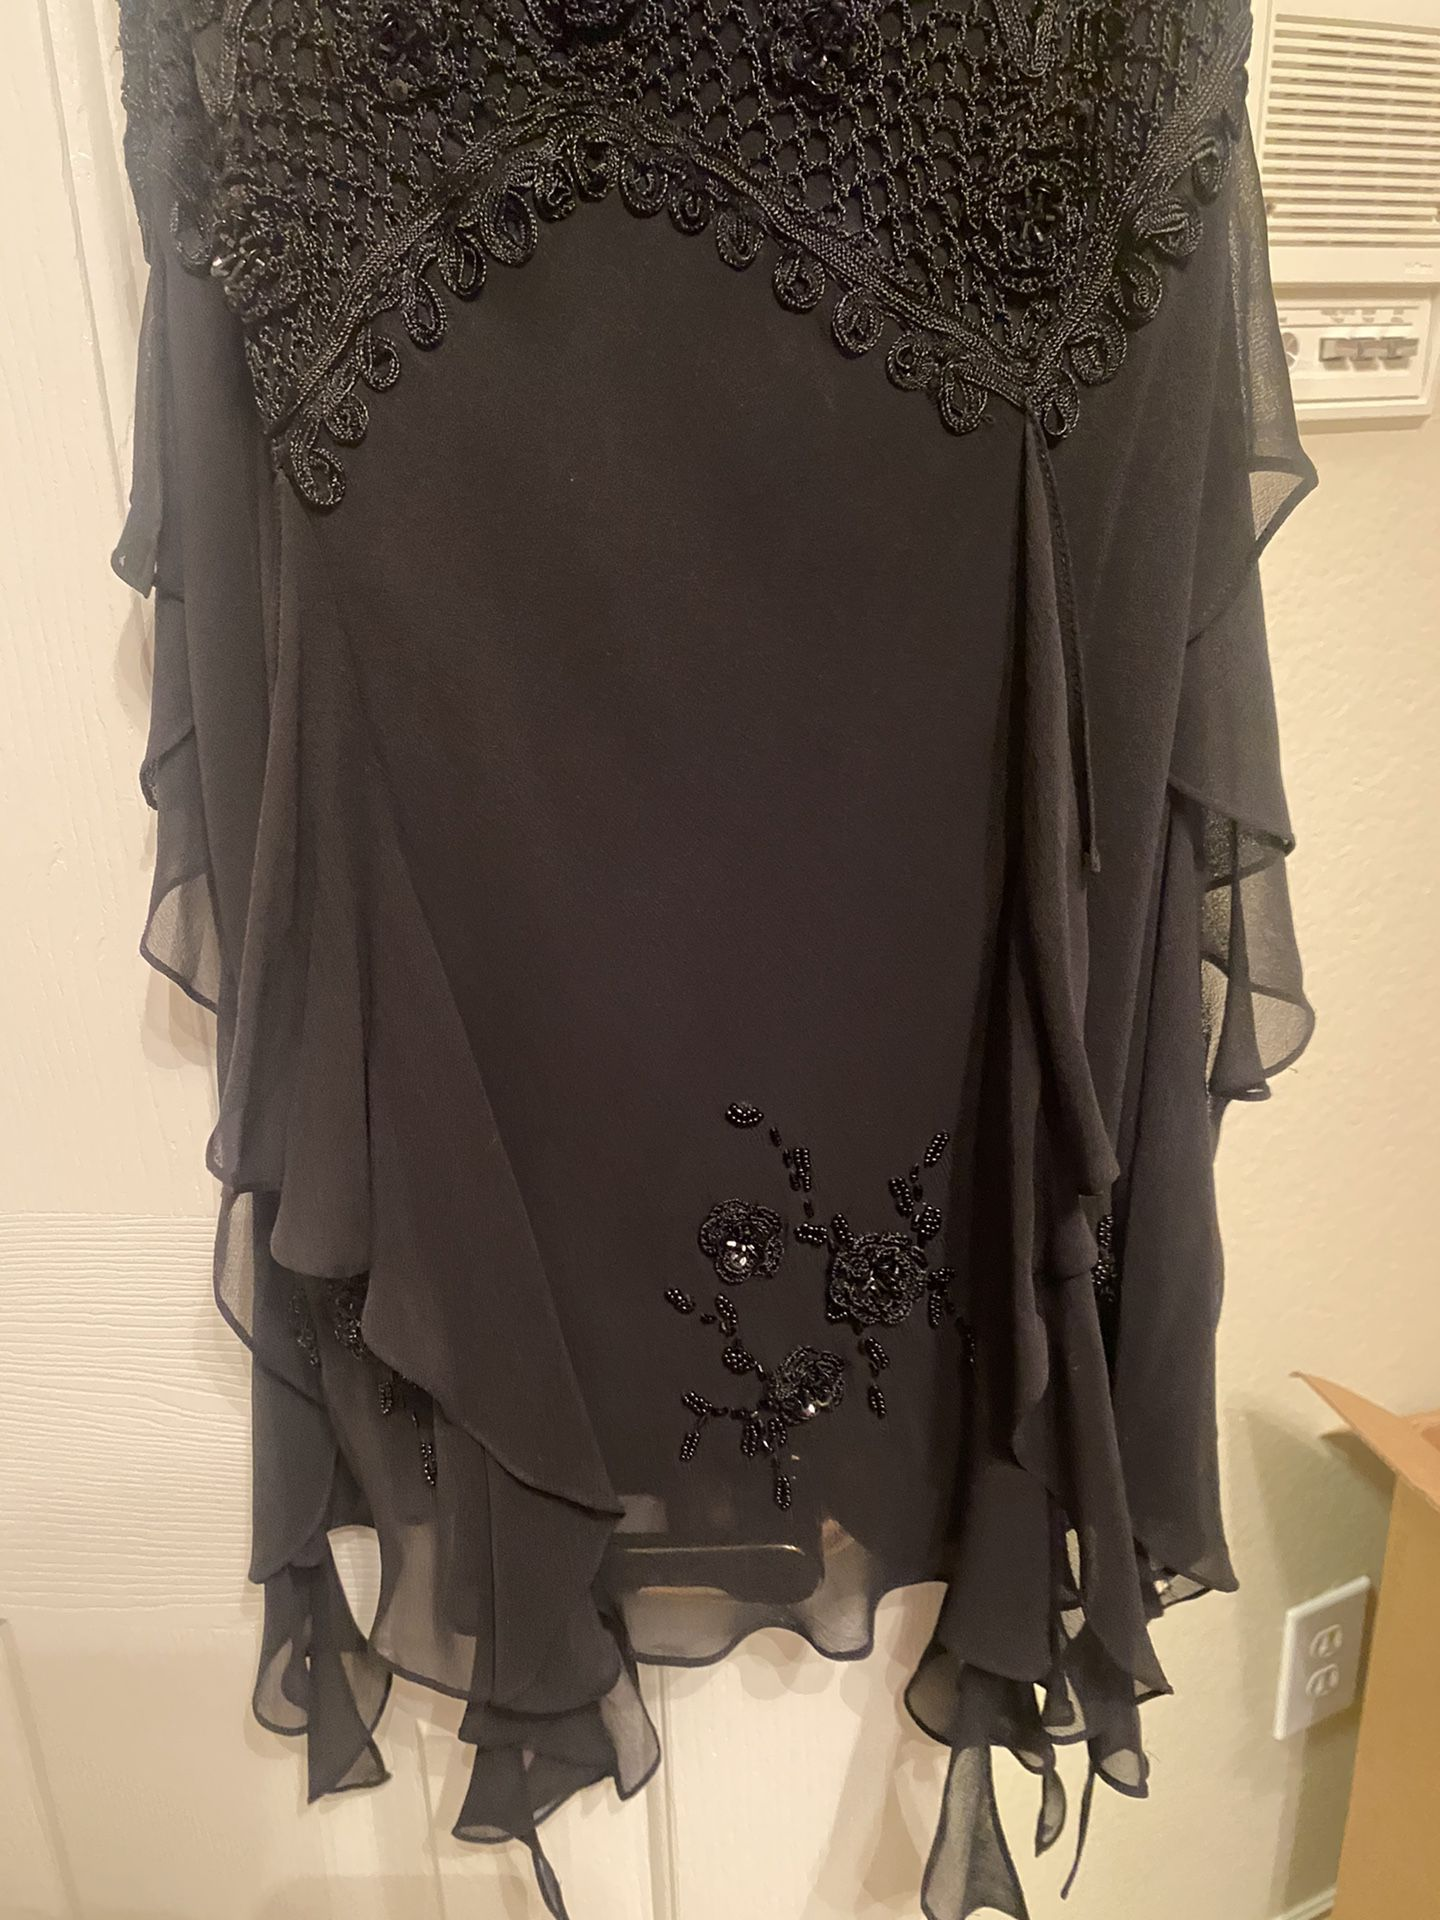 Absolutely Stunning Sue Wong Silk Mid Length Black Gown